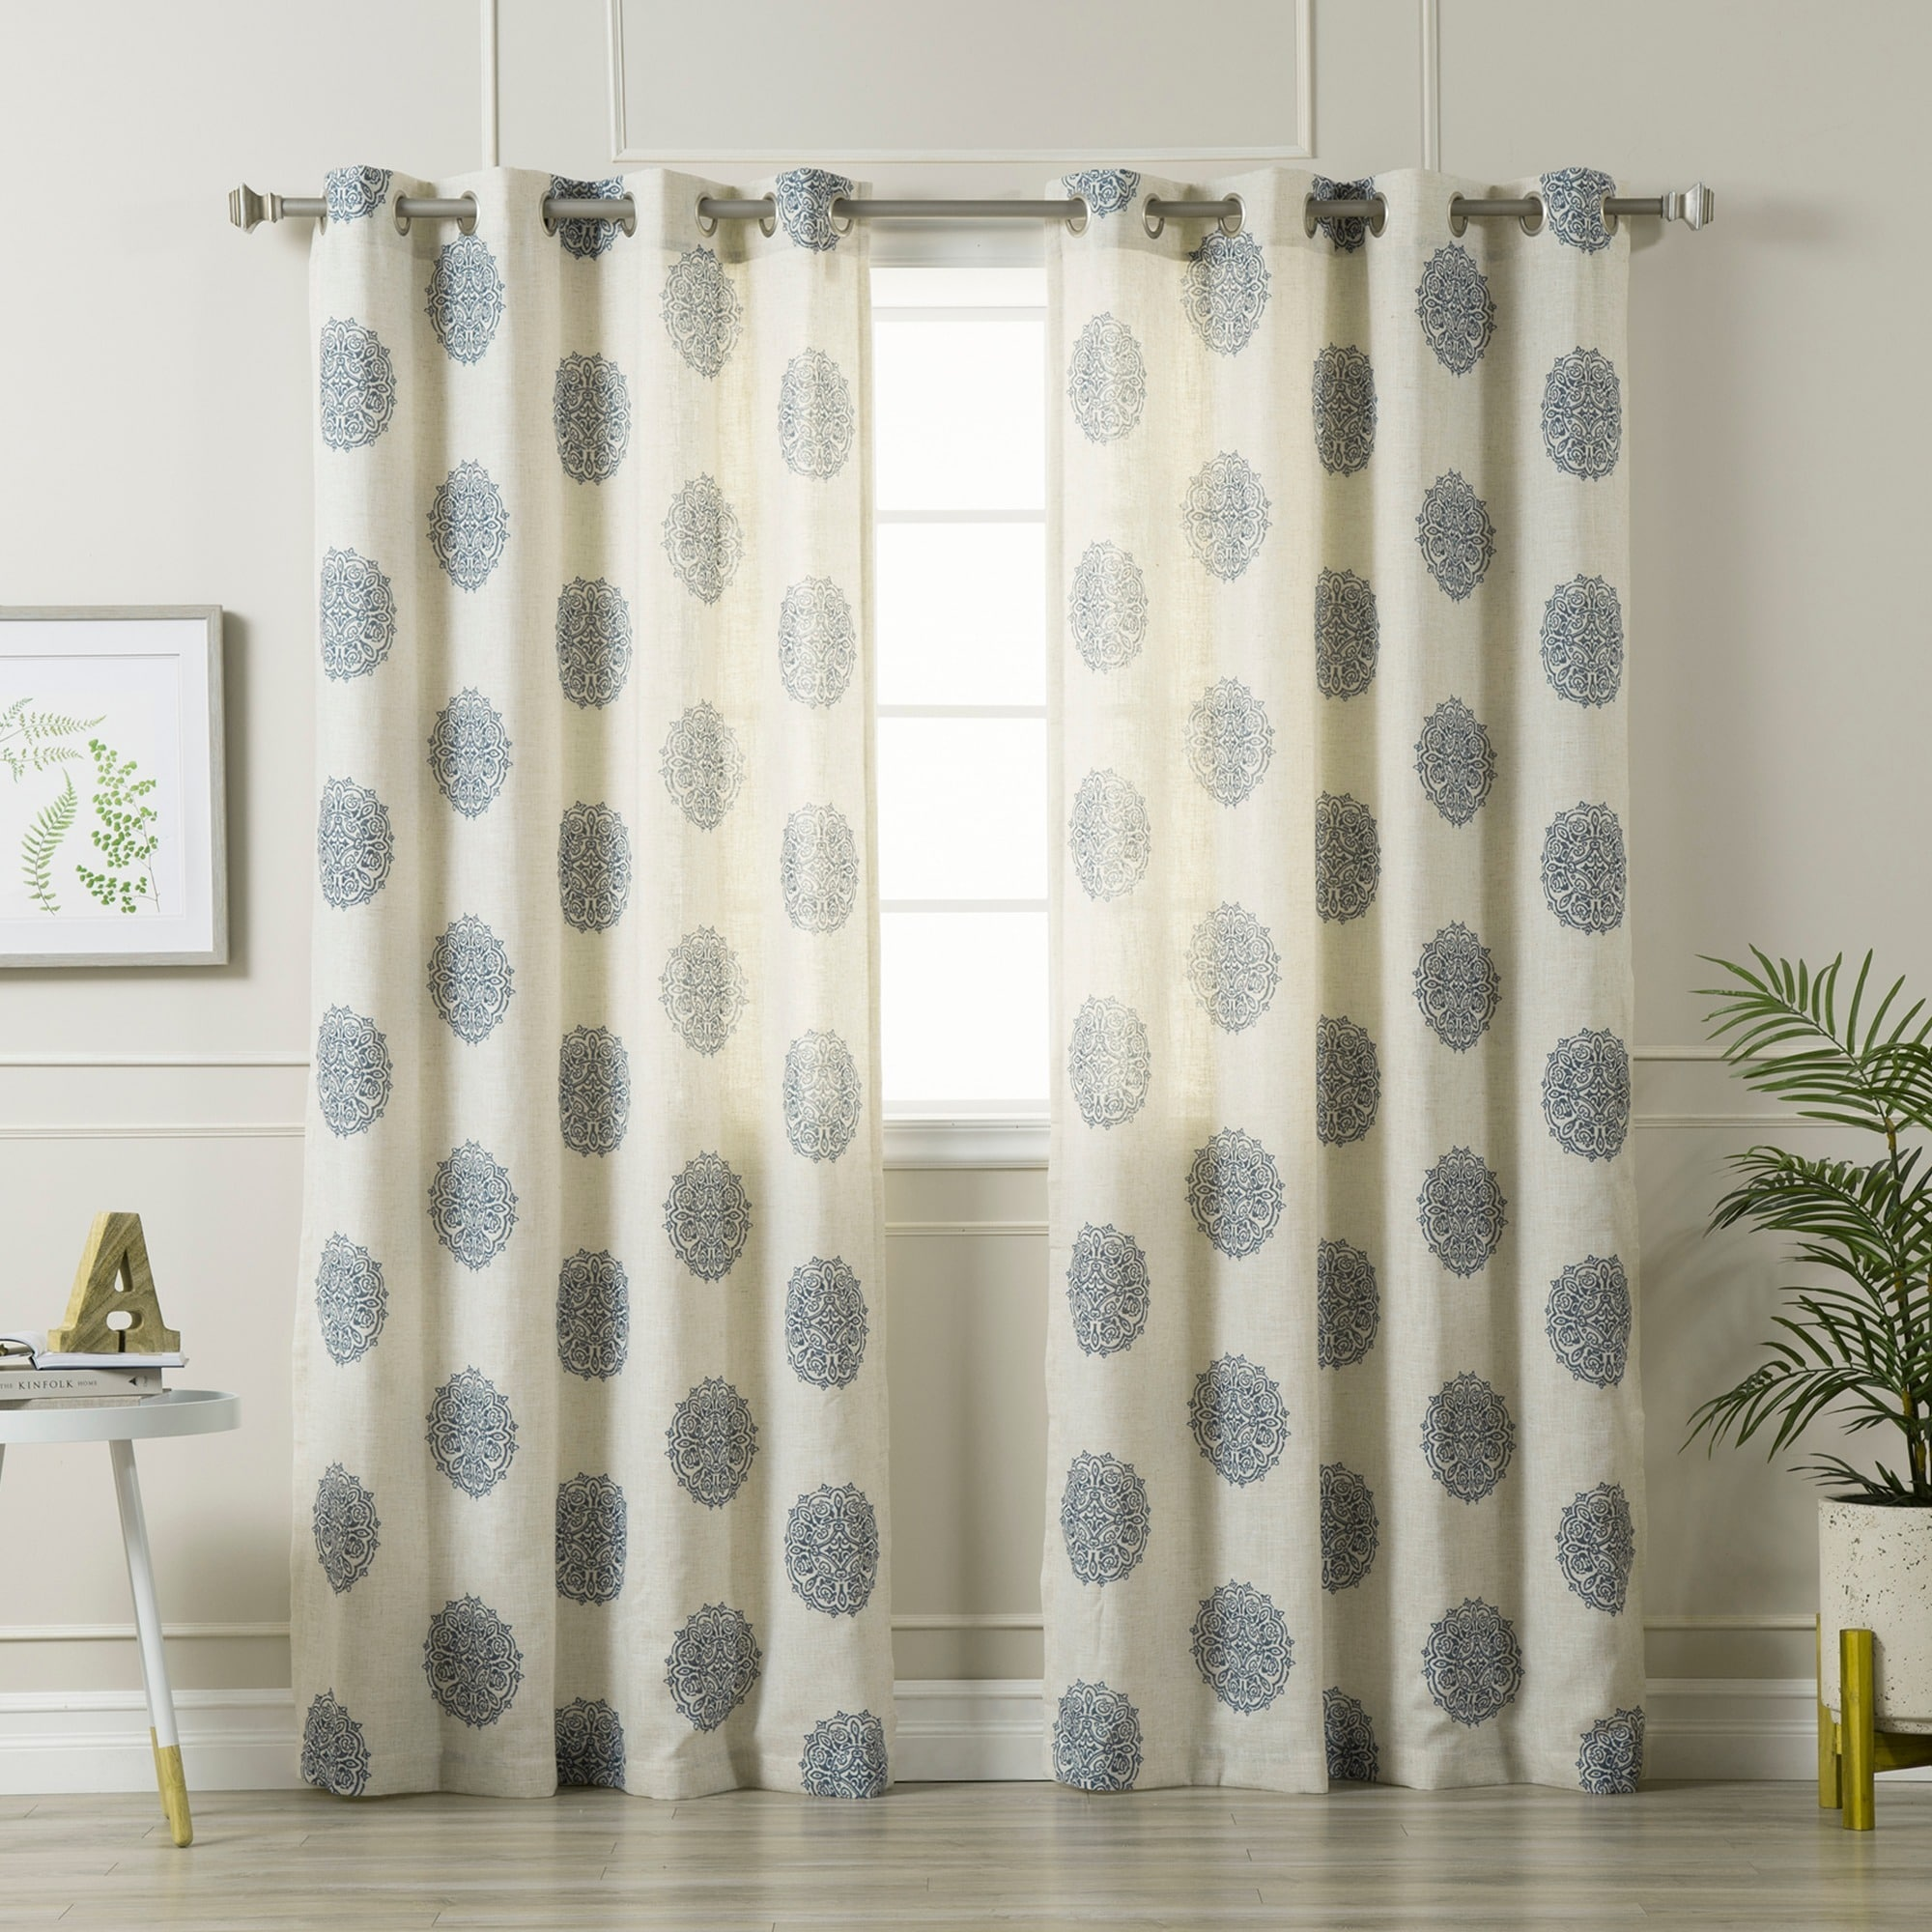 of curtains curtain shower blue inch coral legalize design ideas crew rod